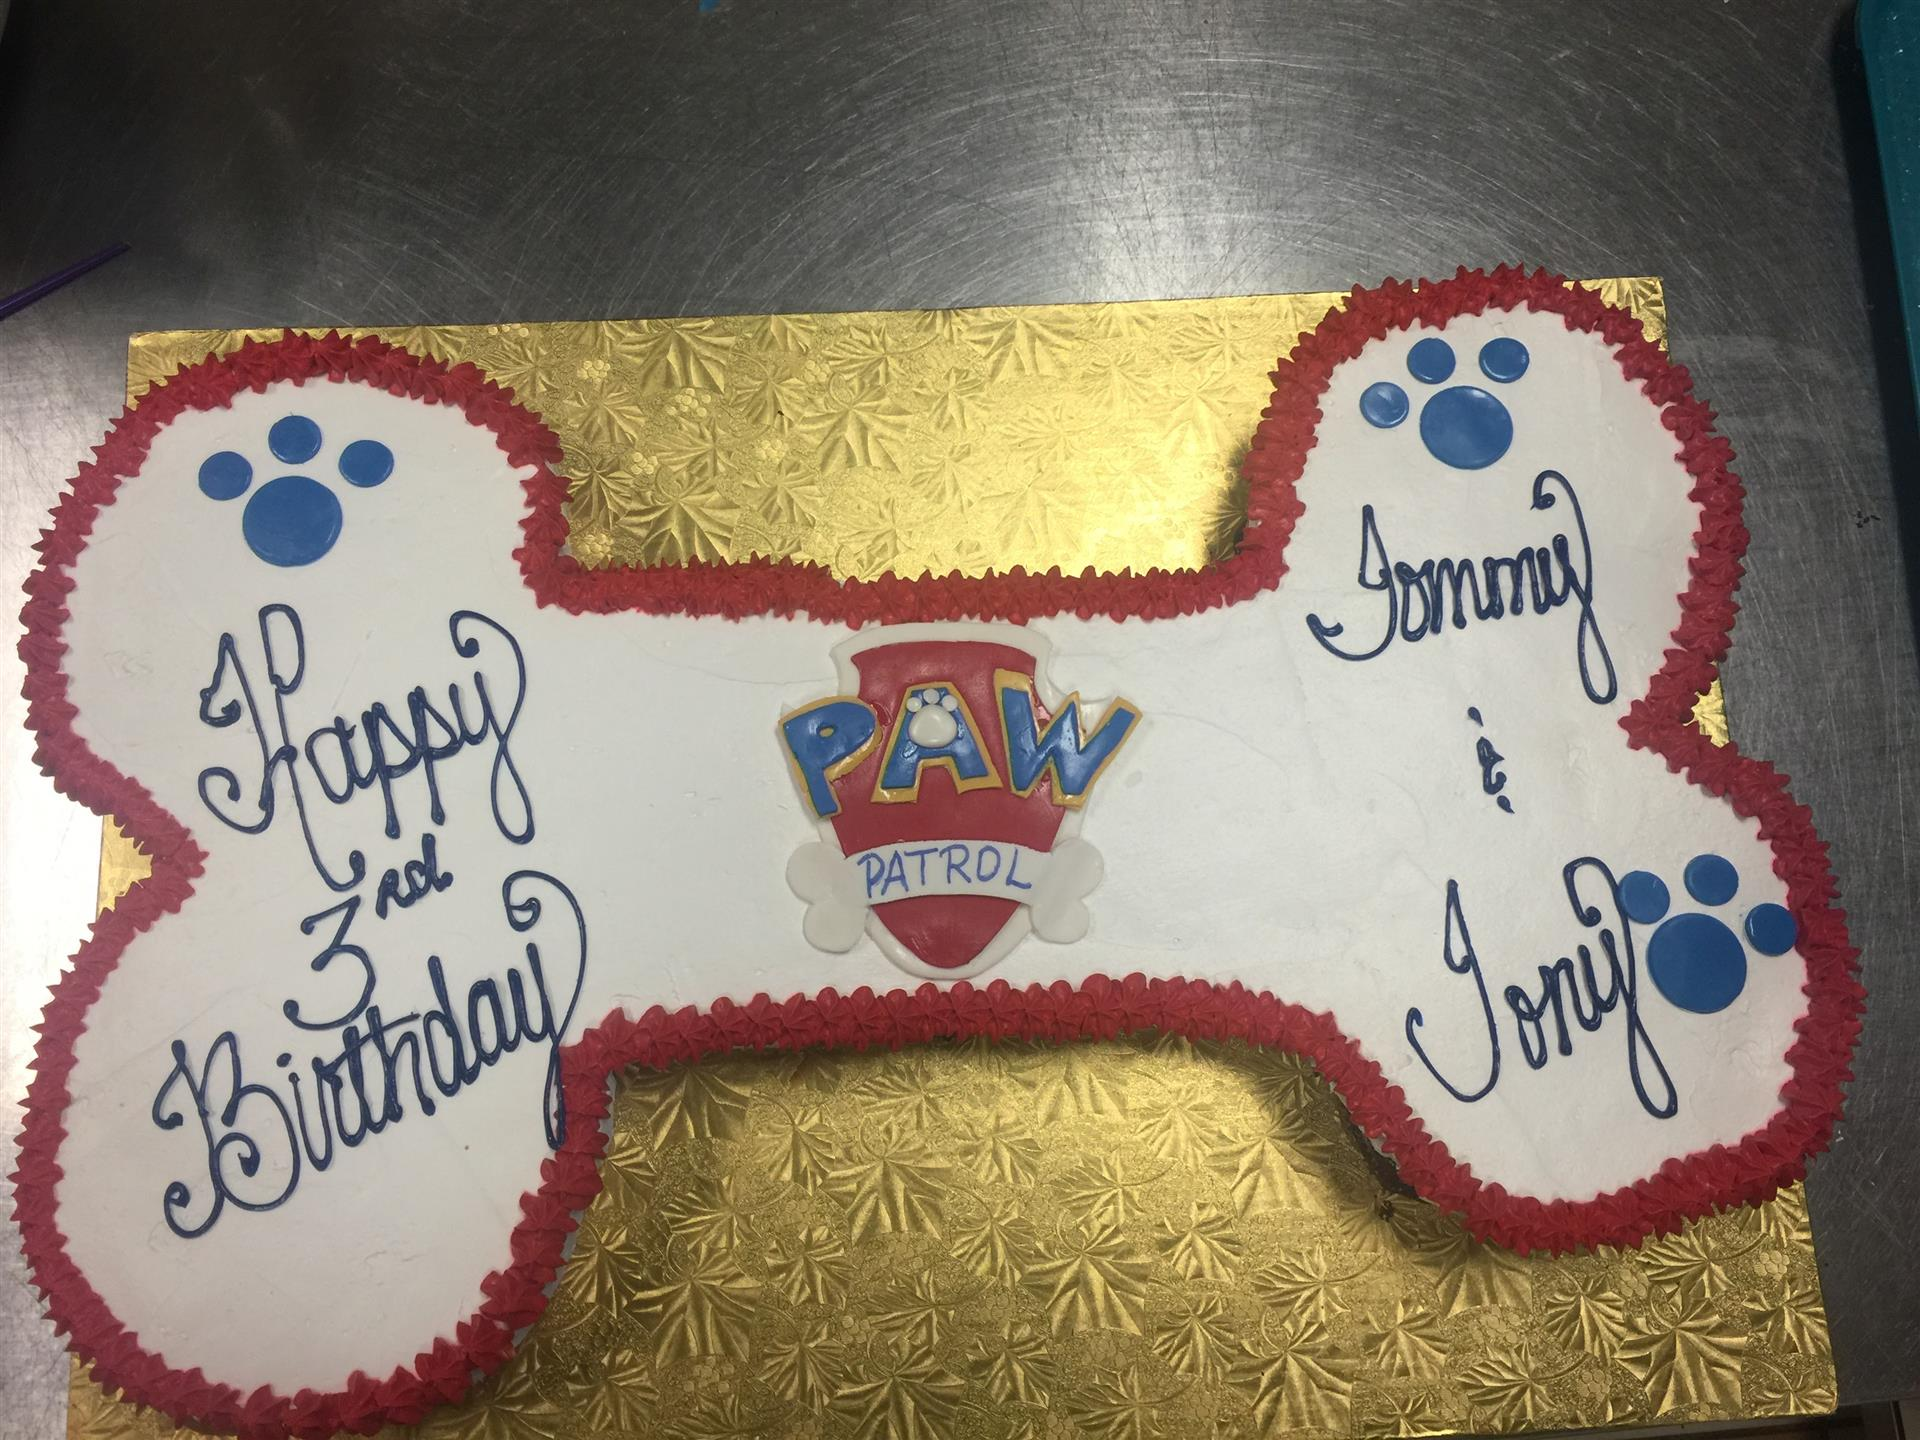 a paw patrol cake shaped like a giant dog bone